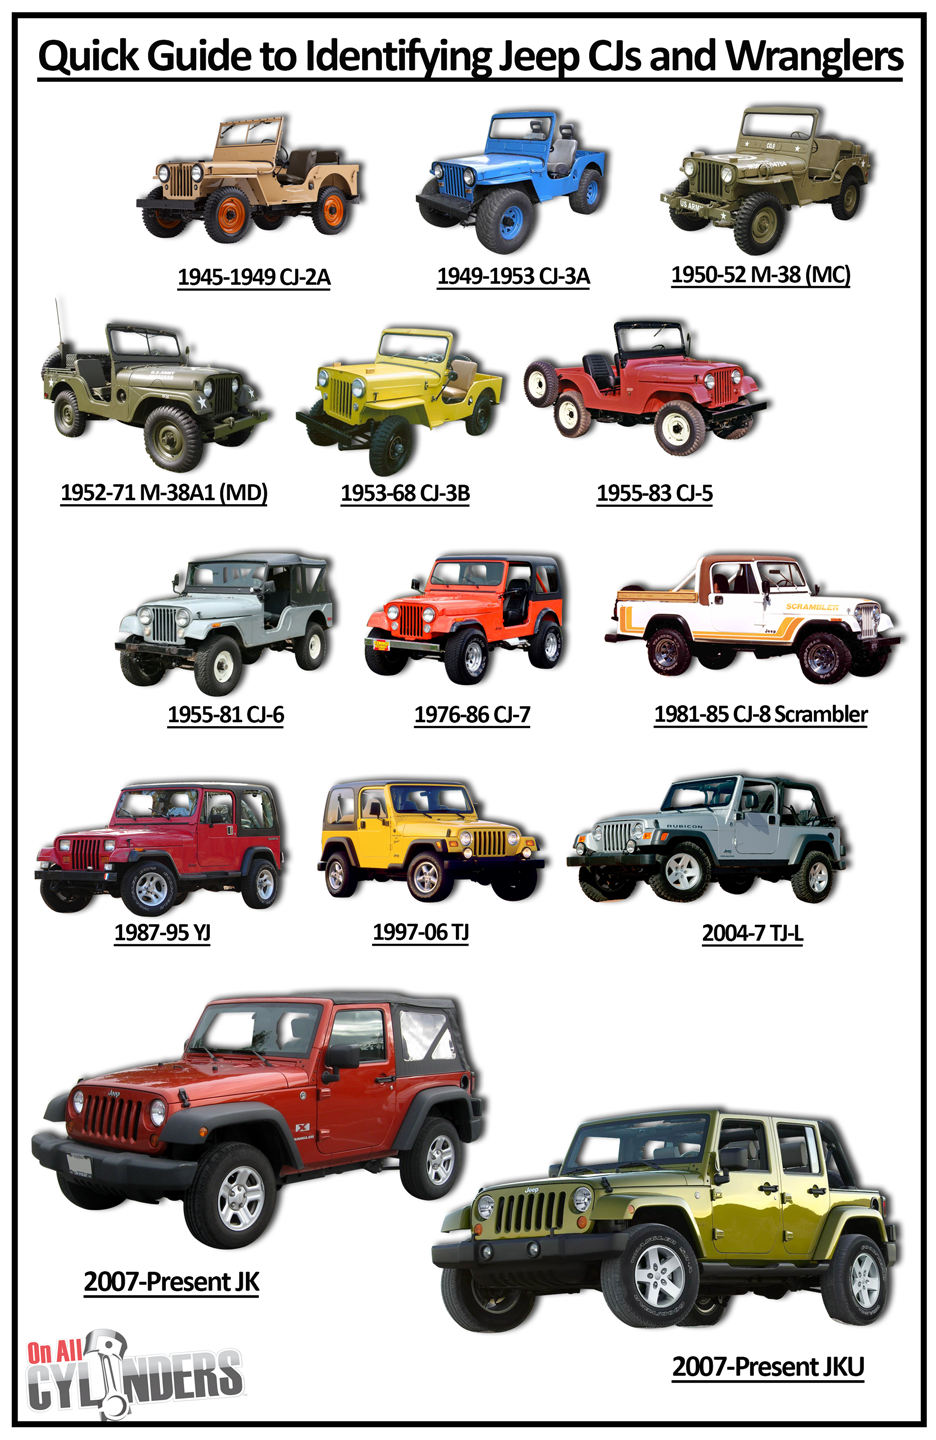 Ride Guides A Quick Guide To Identifying Jeep Cjs And 1987 2018 Wranglers Onallcylinders